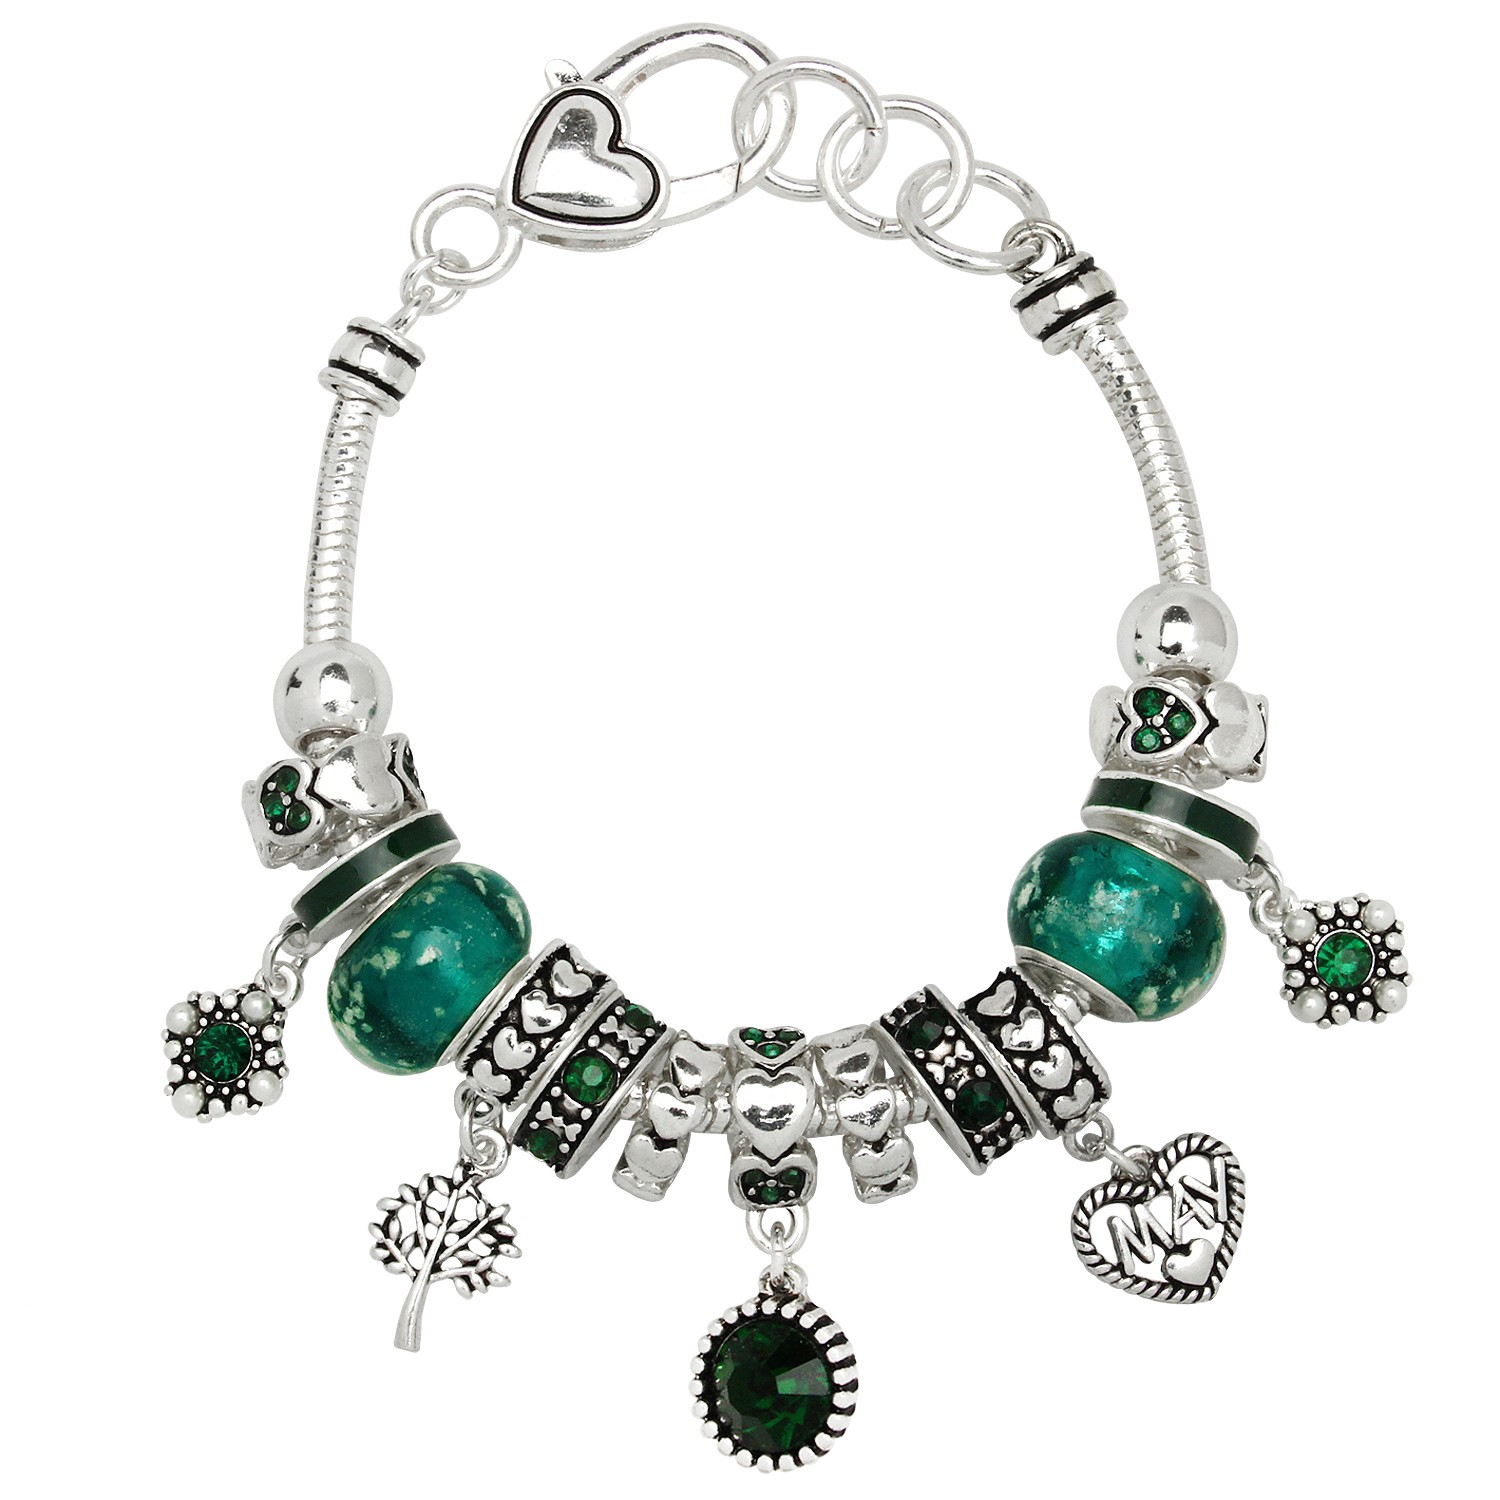 birthstone charm bracelet for emerald may birthstone charm bracelet murano 1741